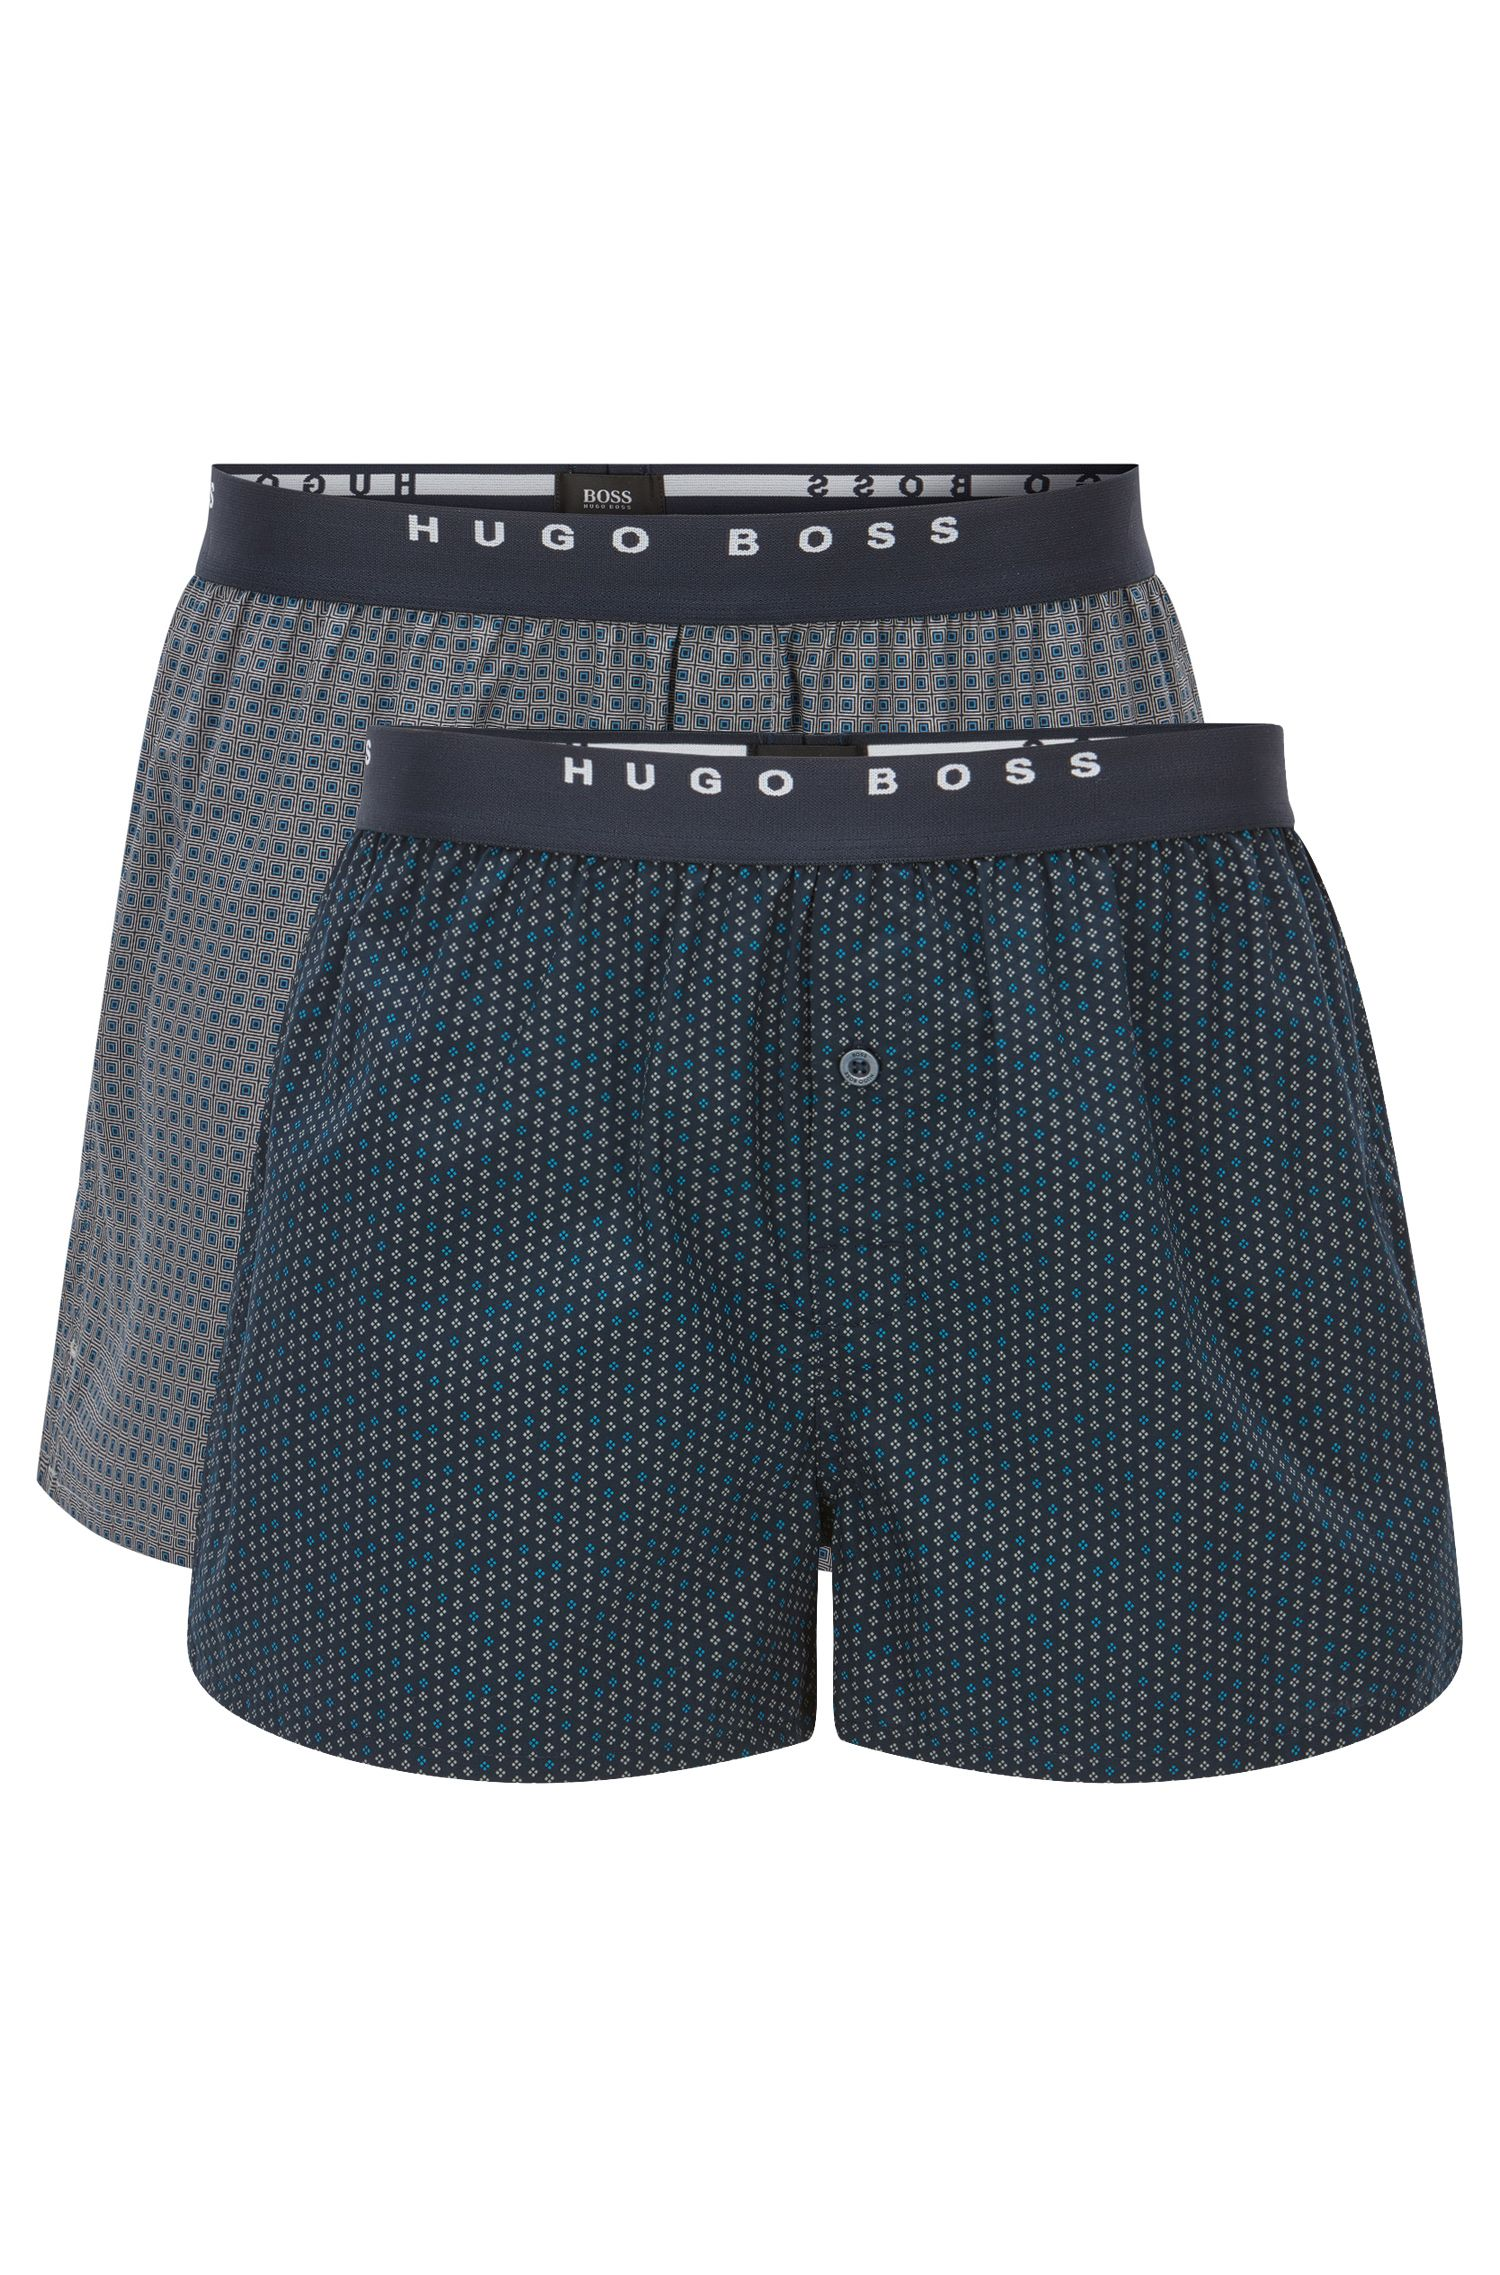 Lot de deux boxers en coton à carreaux